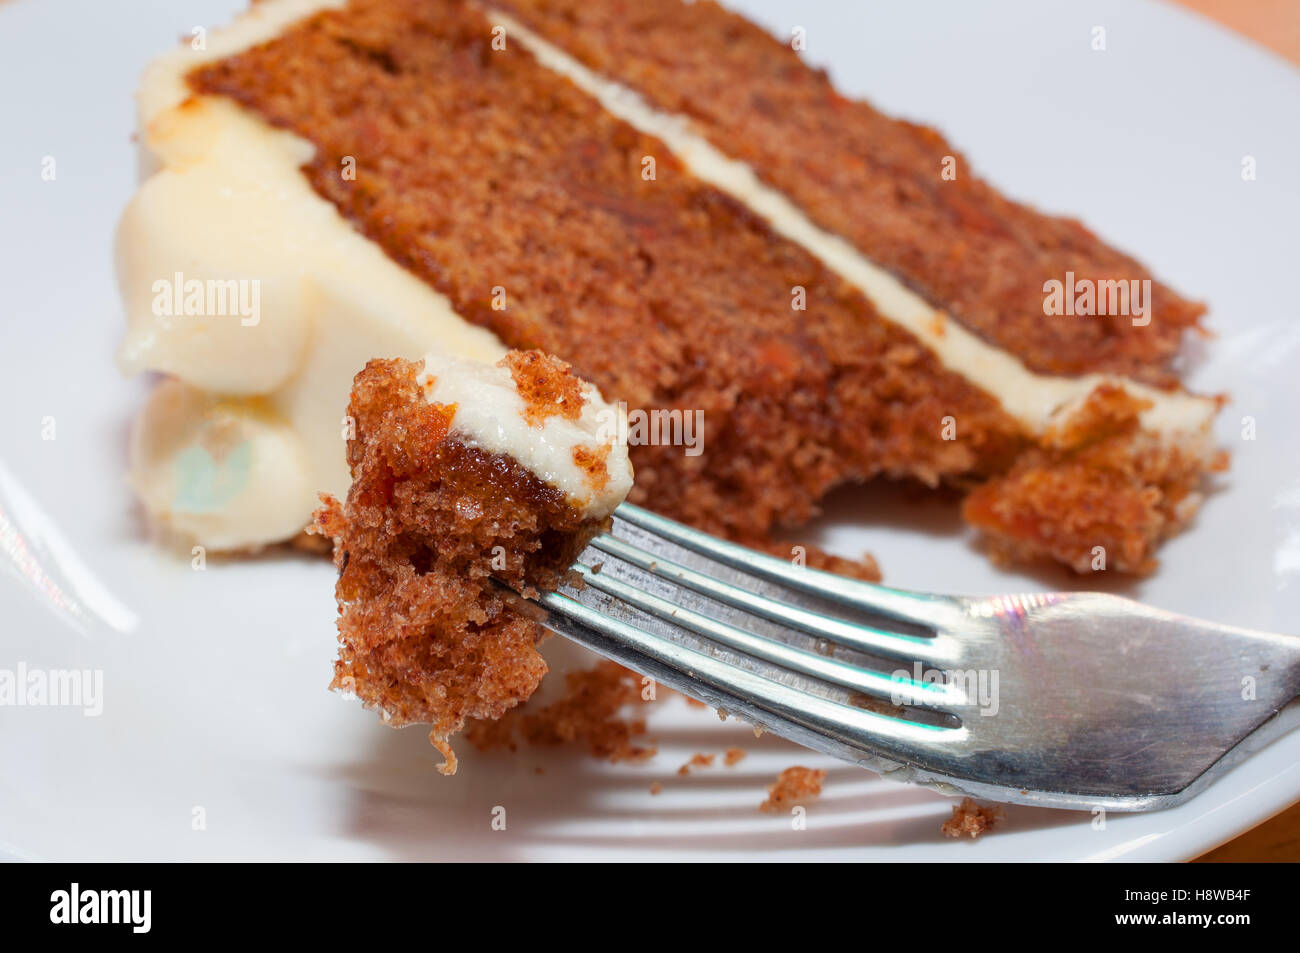 Small slice of carrot cake and a fork on a plate - Stock Image